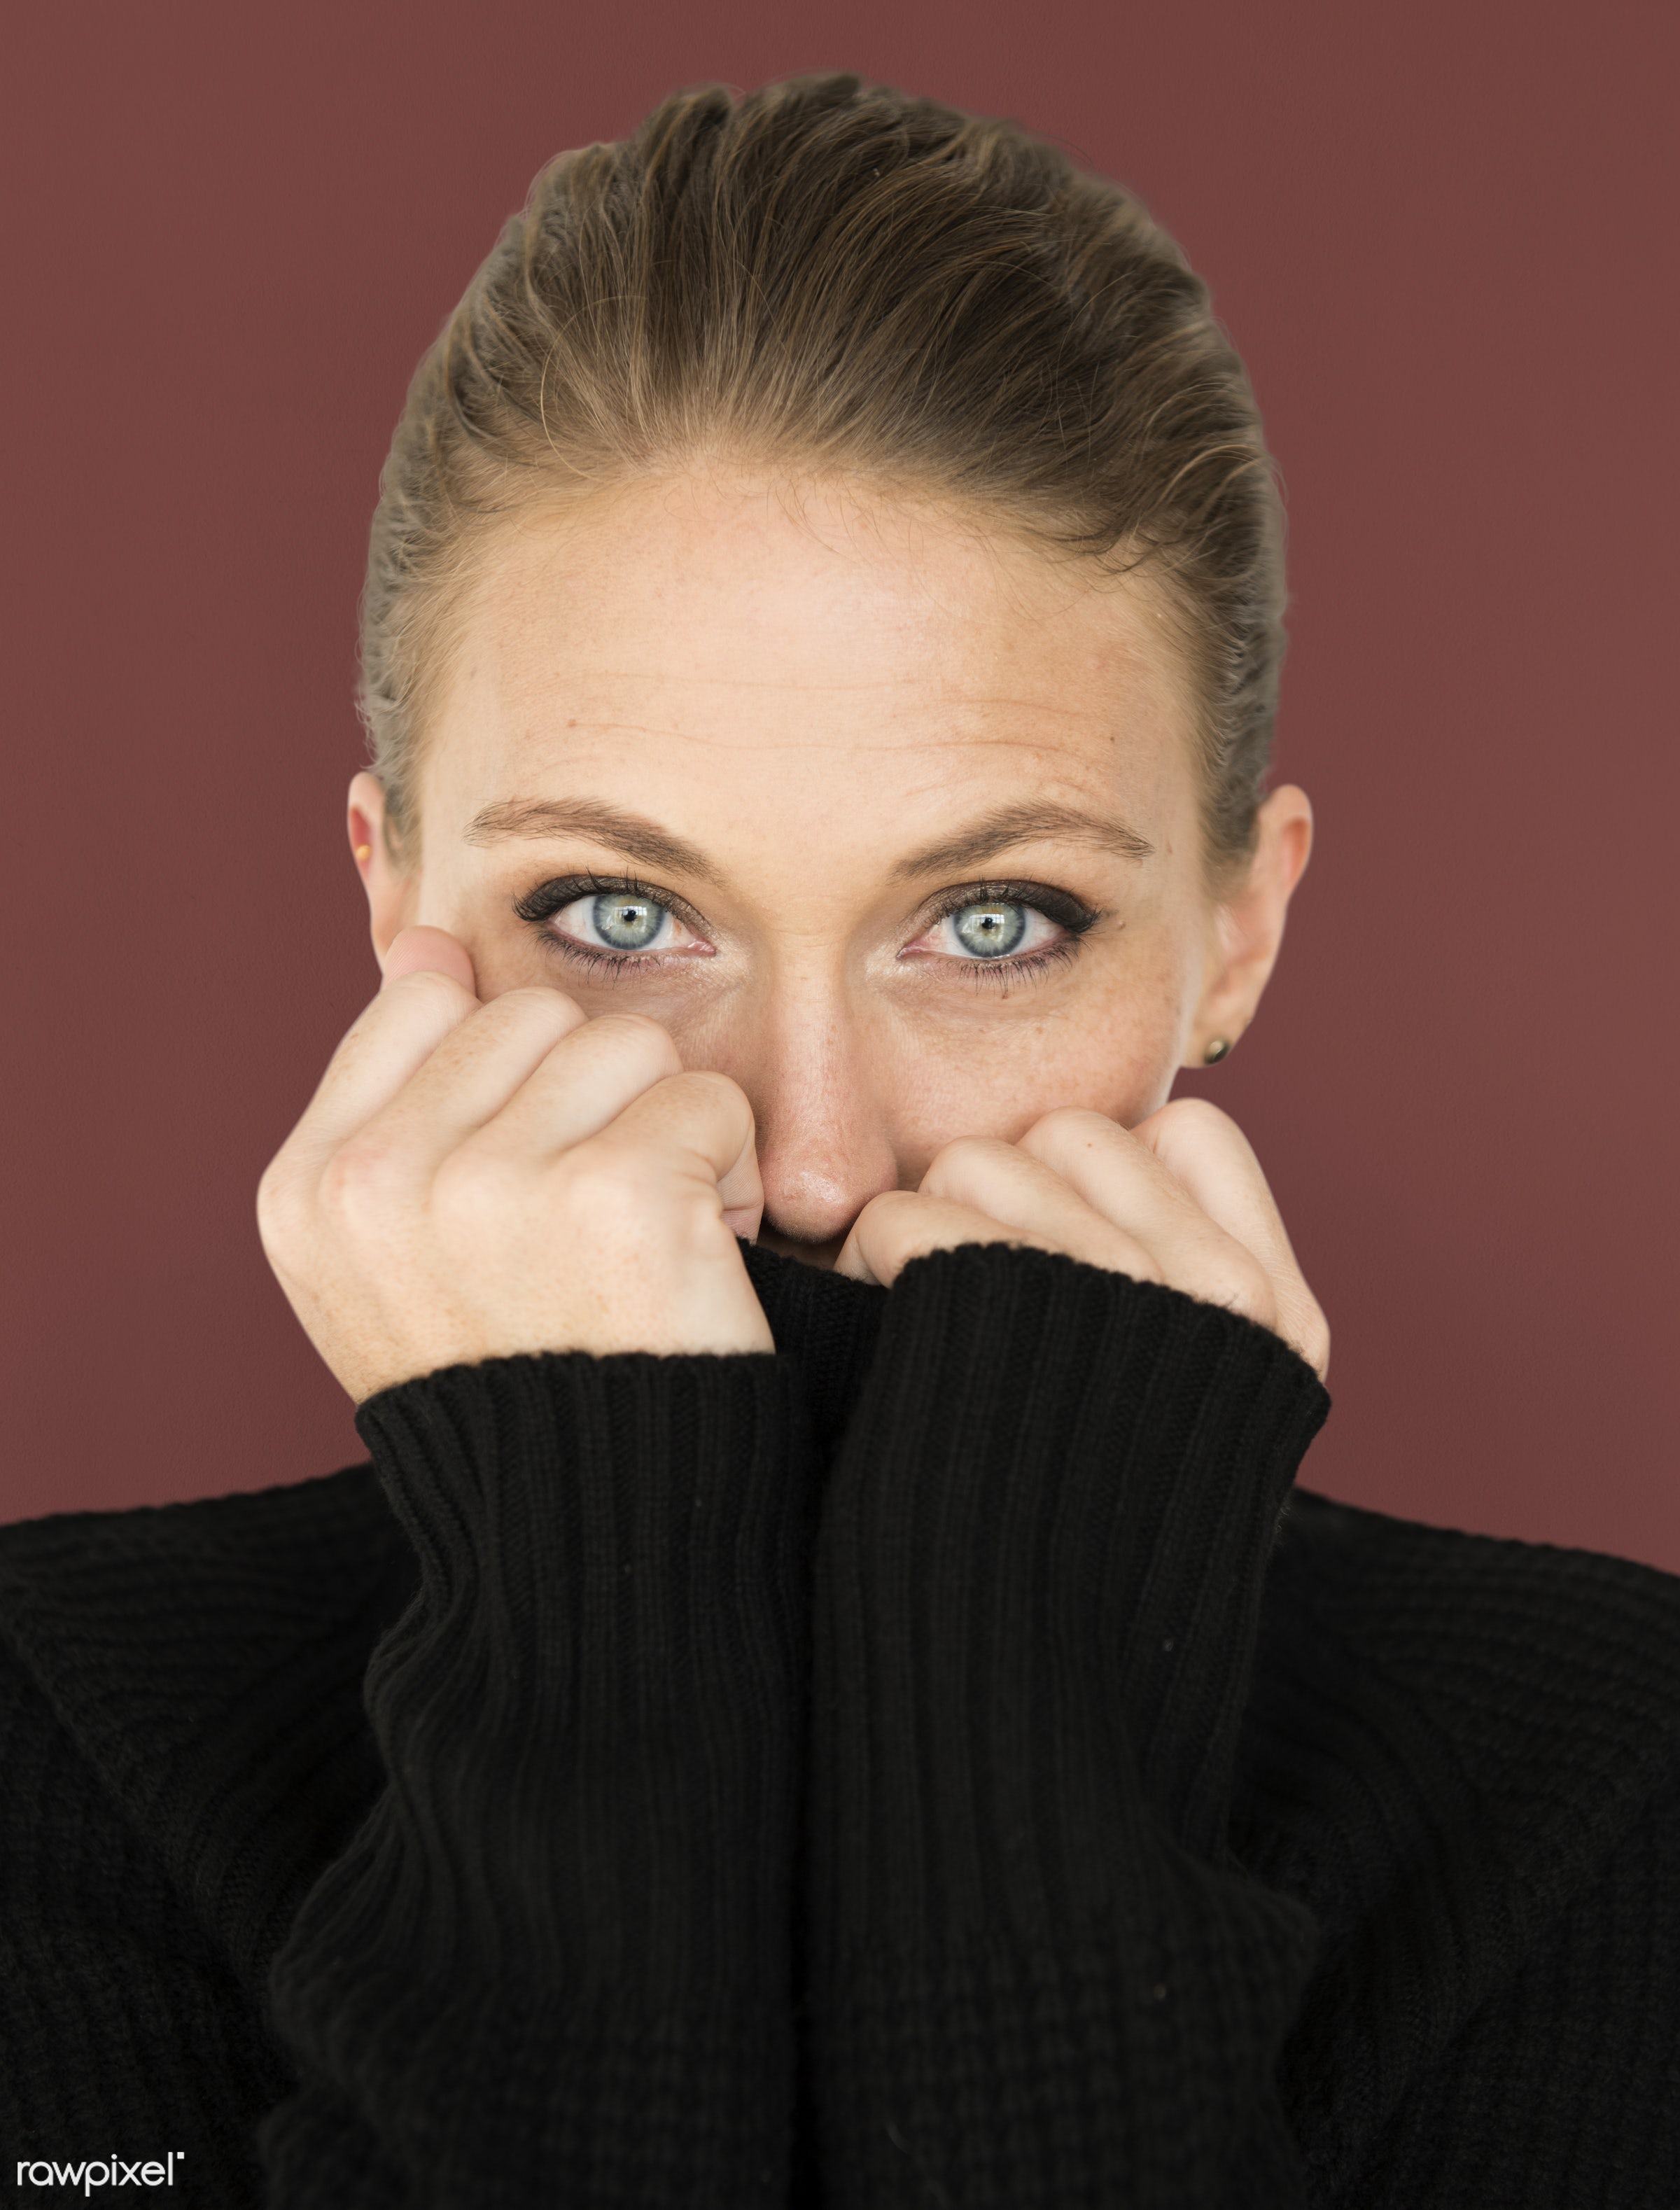 adult, background, beauty, brown, cardigan, casual, charming, cold, cute, emotion, emotional, expression, face, female, girl...